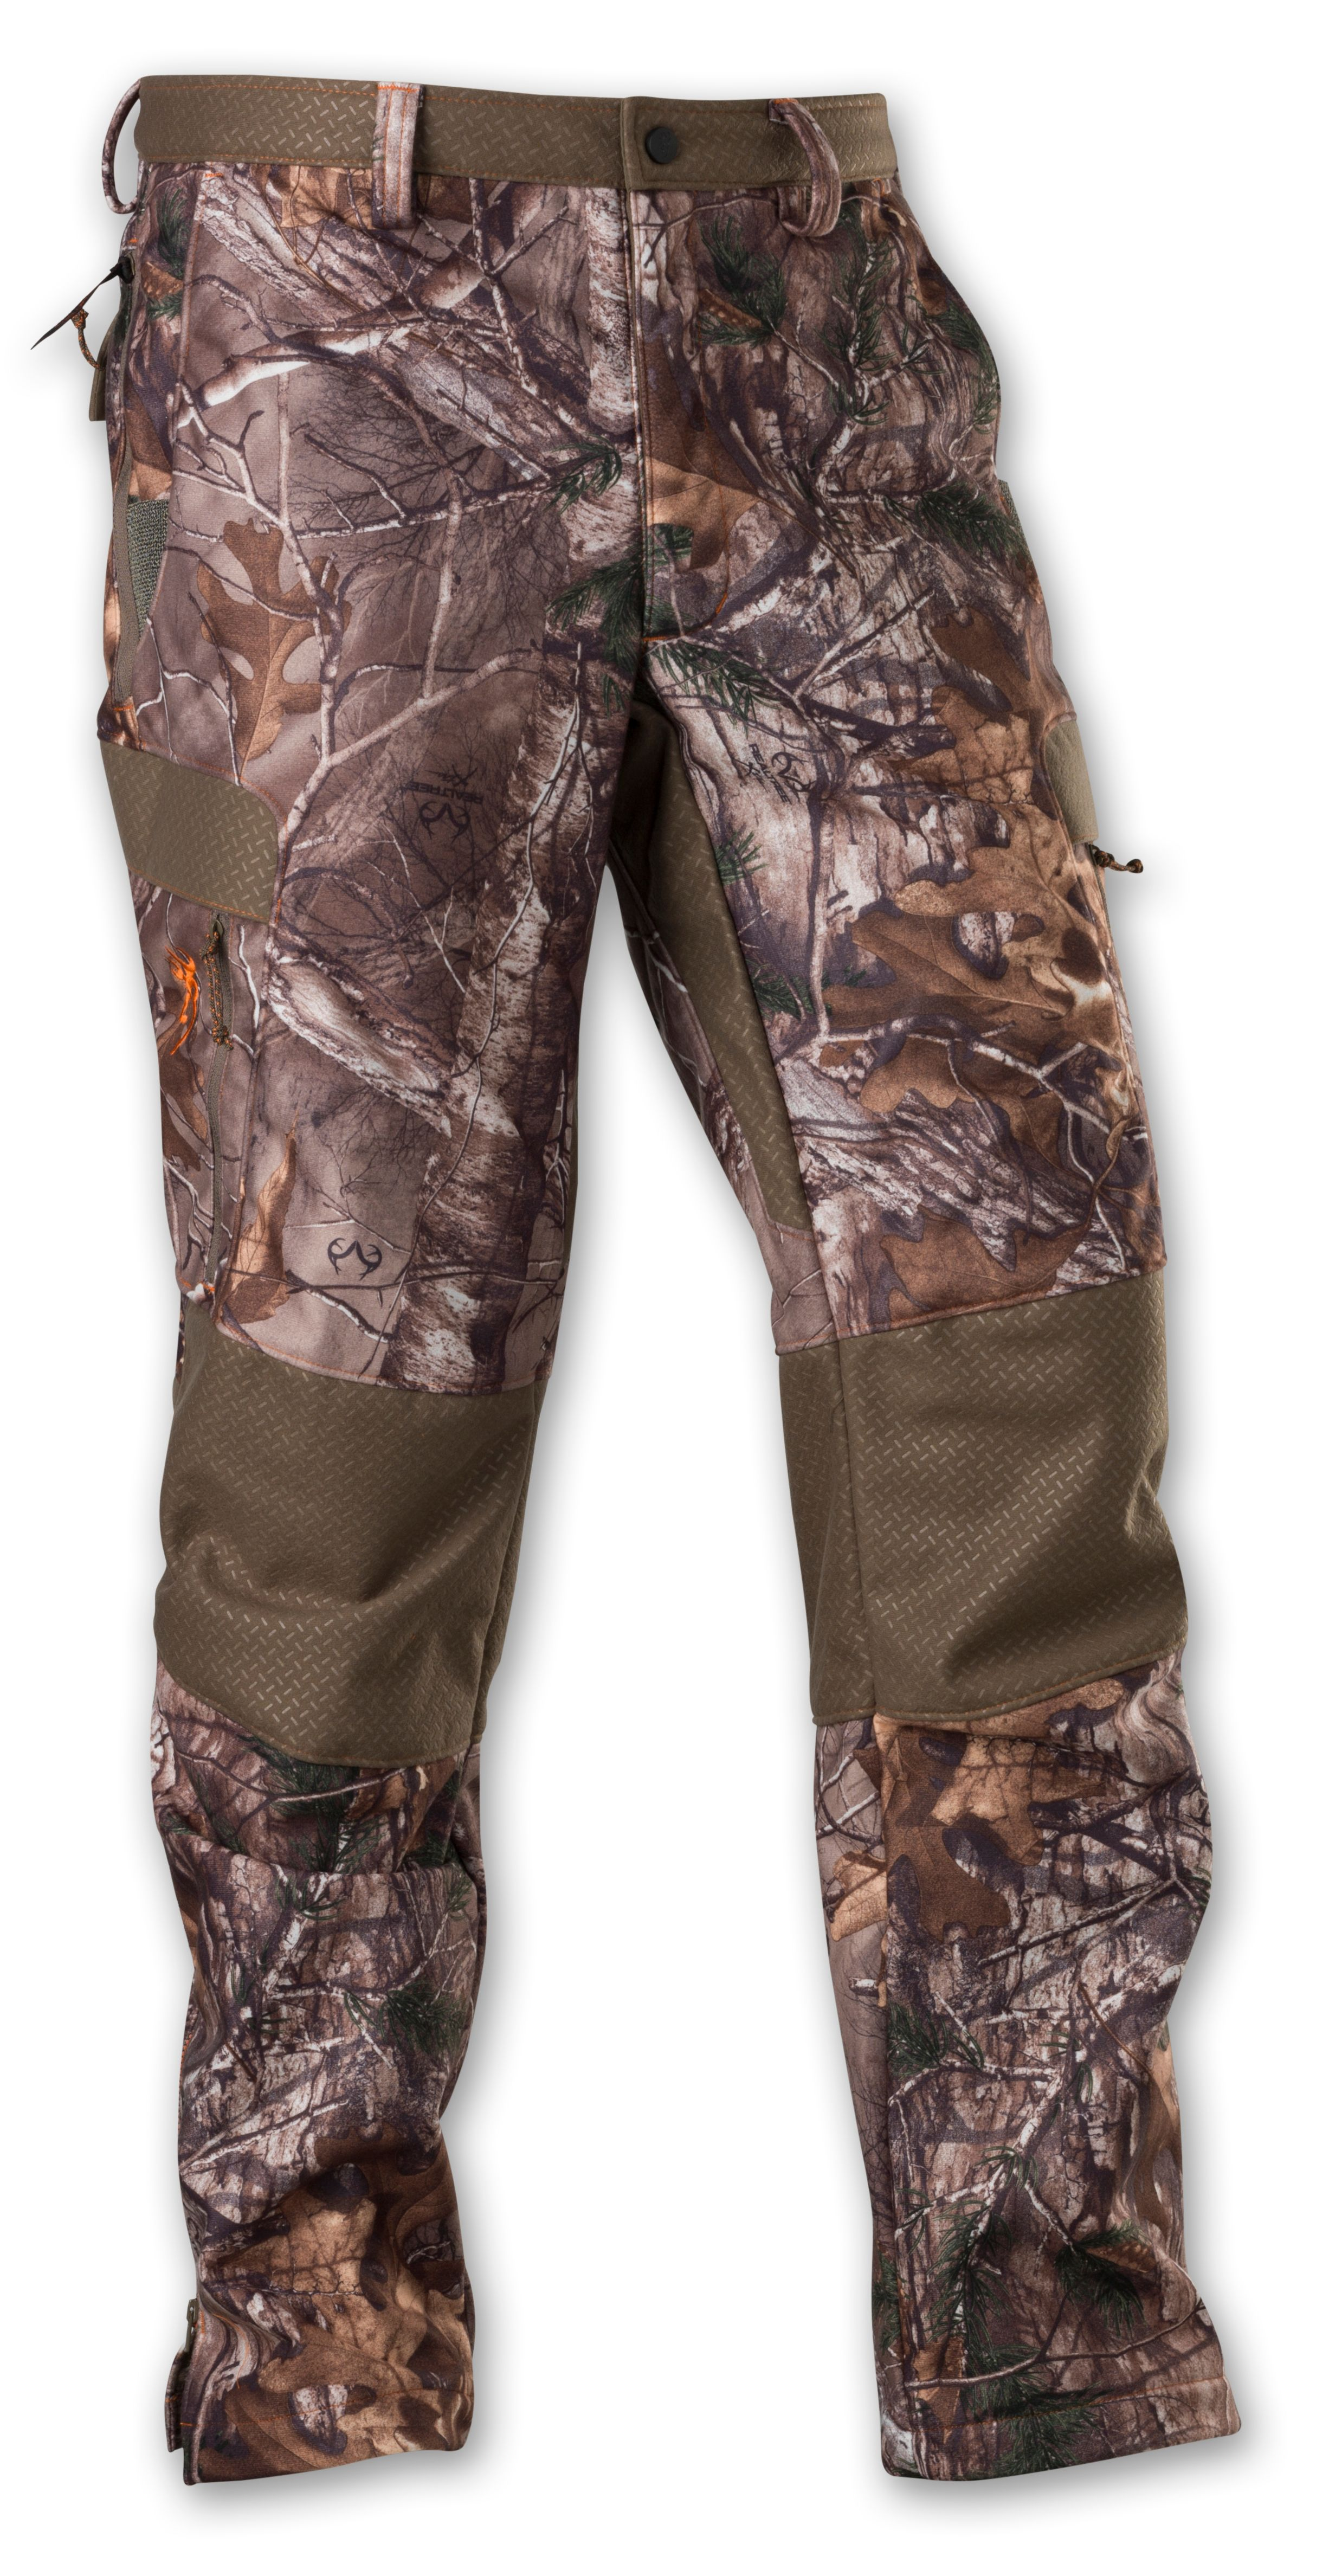 e6455b420b88b Browning Hell's Canyon Realtree Soft Shell Pant $225-240 MSRP, Water  resistant, windproof, highly breathable, articulated knees, regular cut